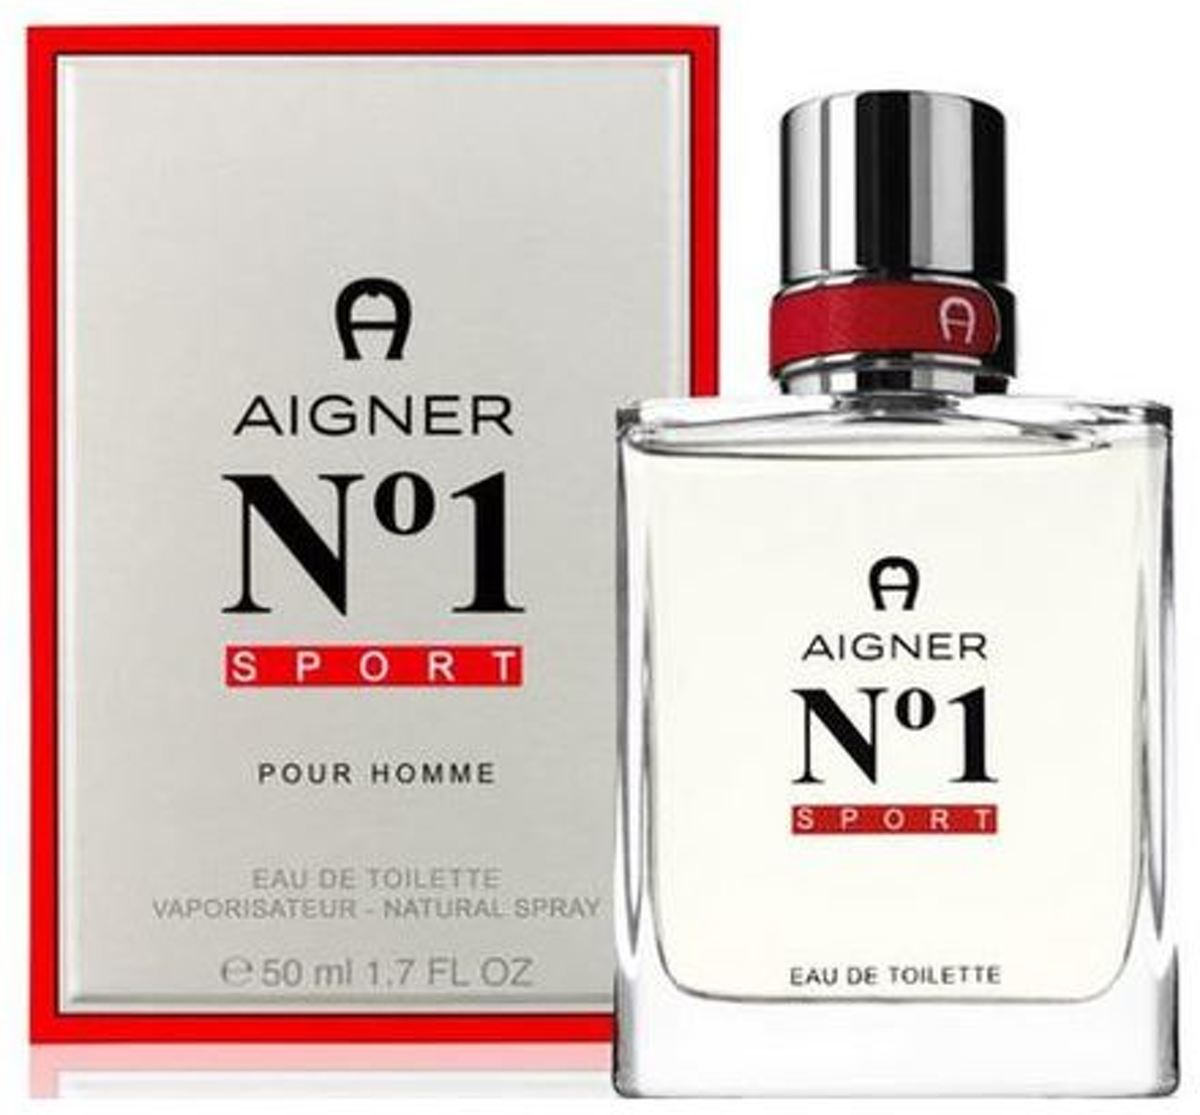 AIGNER NO1 SPORT RED MEN